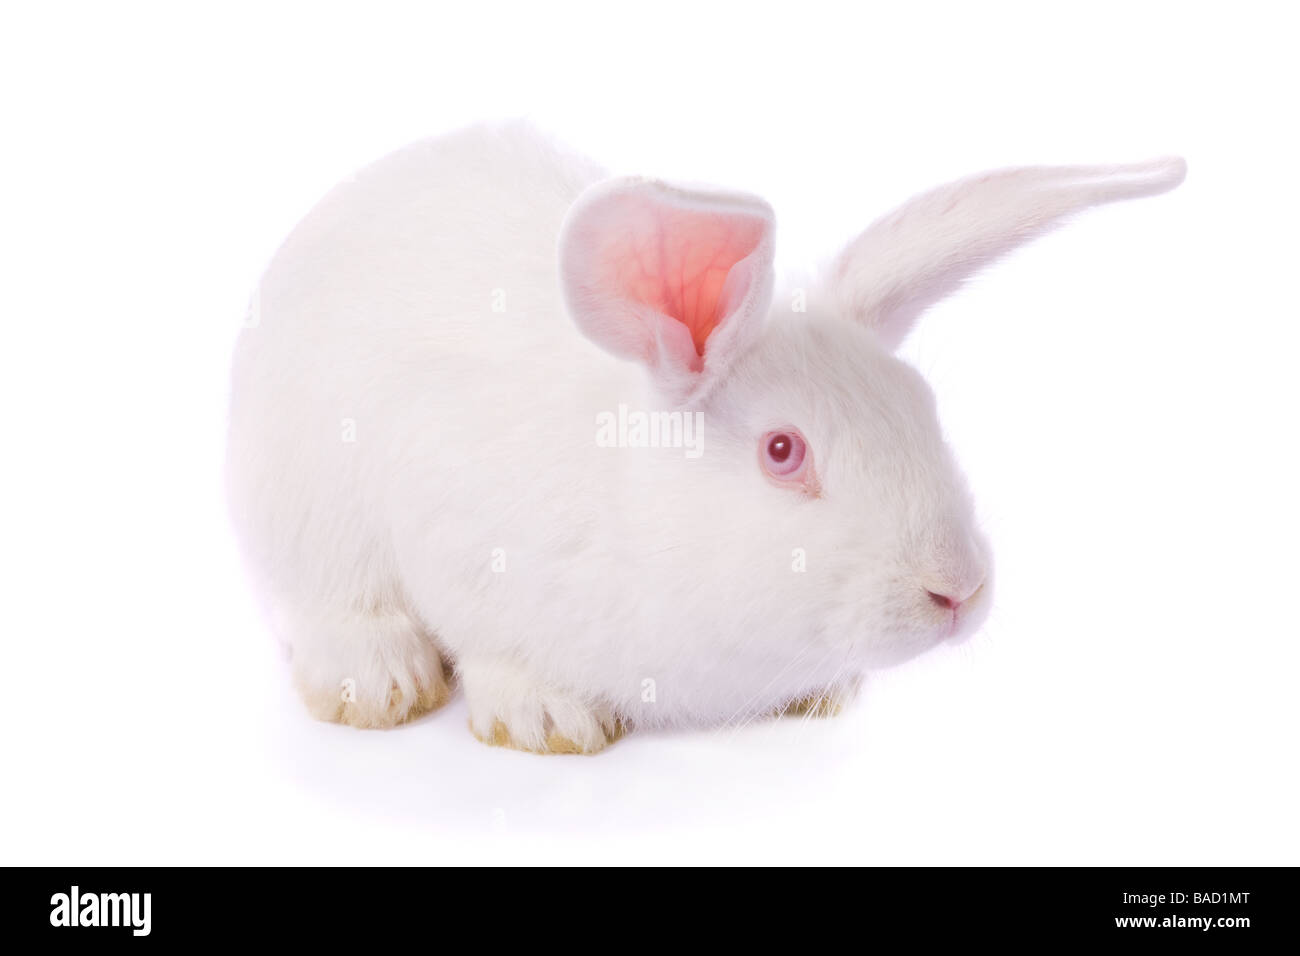 Timid young white rabbit isolated on white background - Stock Image